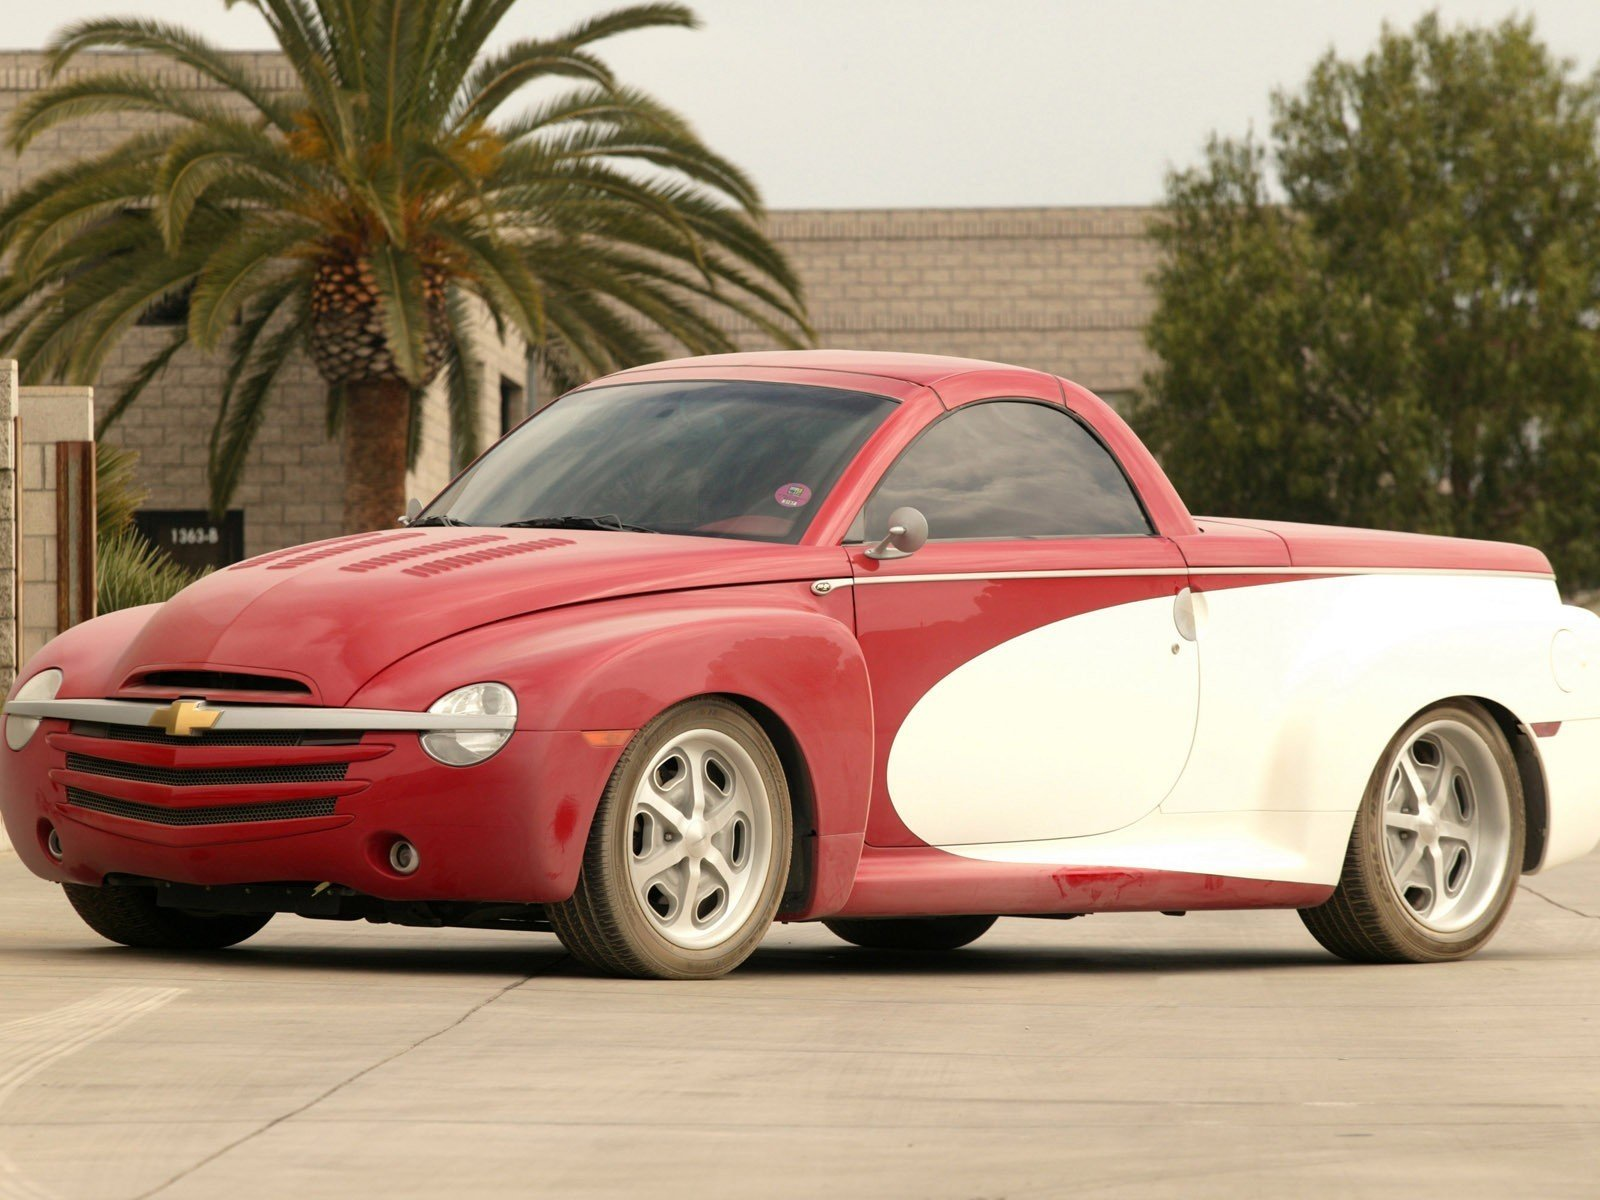 2004 Chevrolet SSR Push Truck Review - Top Speed